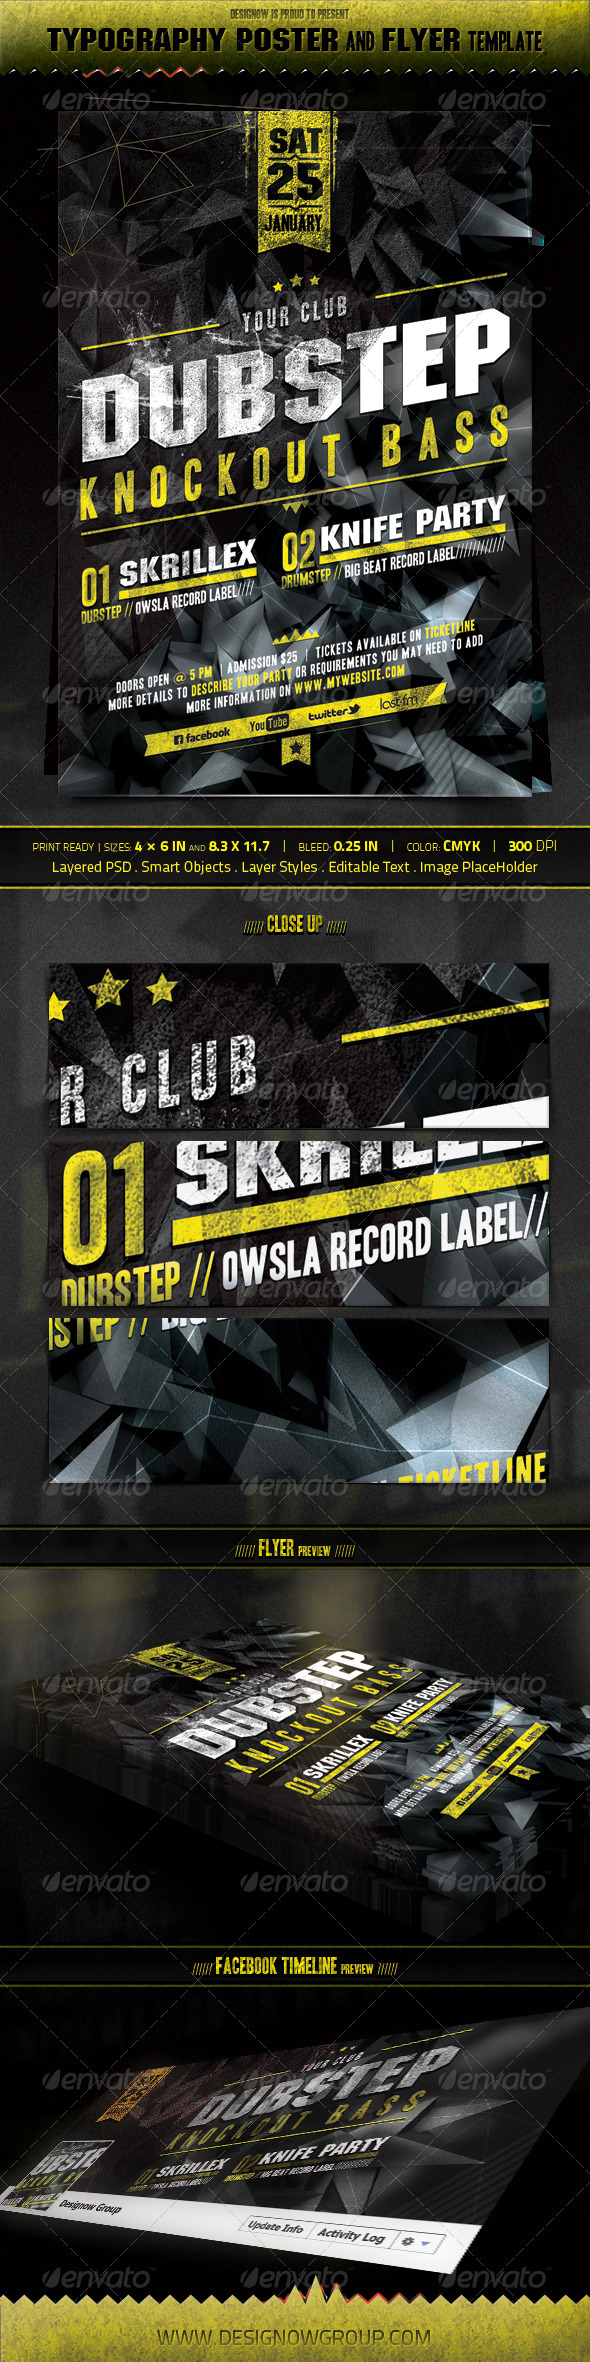 Music Knockout Bass Flyer and Poster Template - Clubs & Parties Events